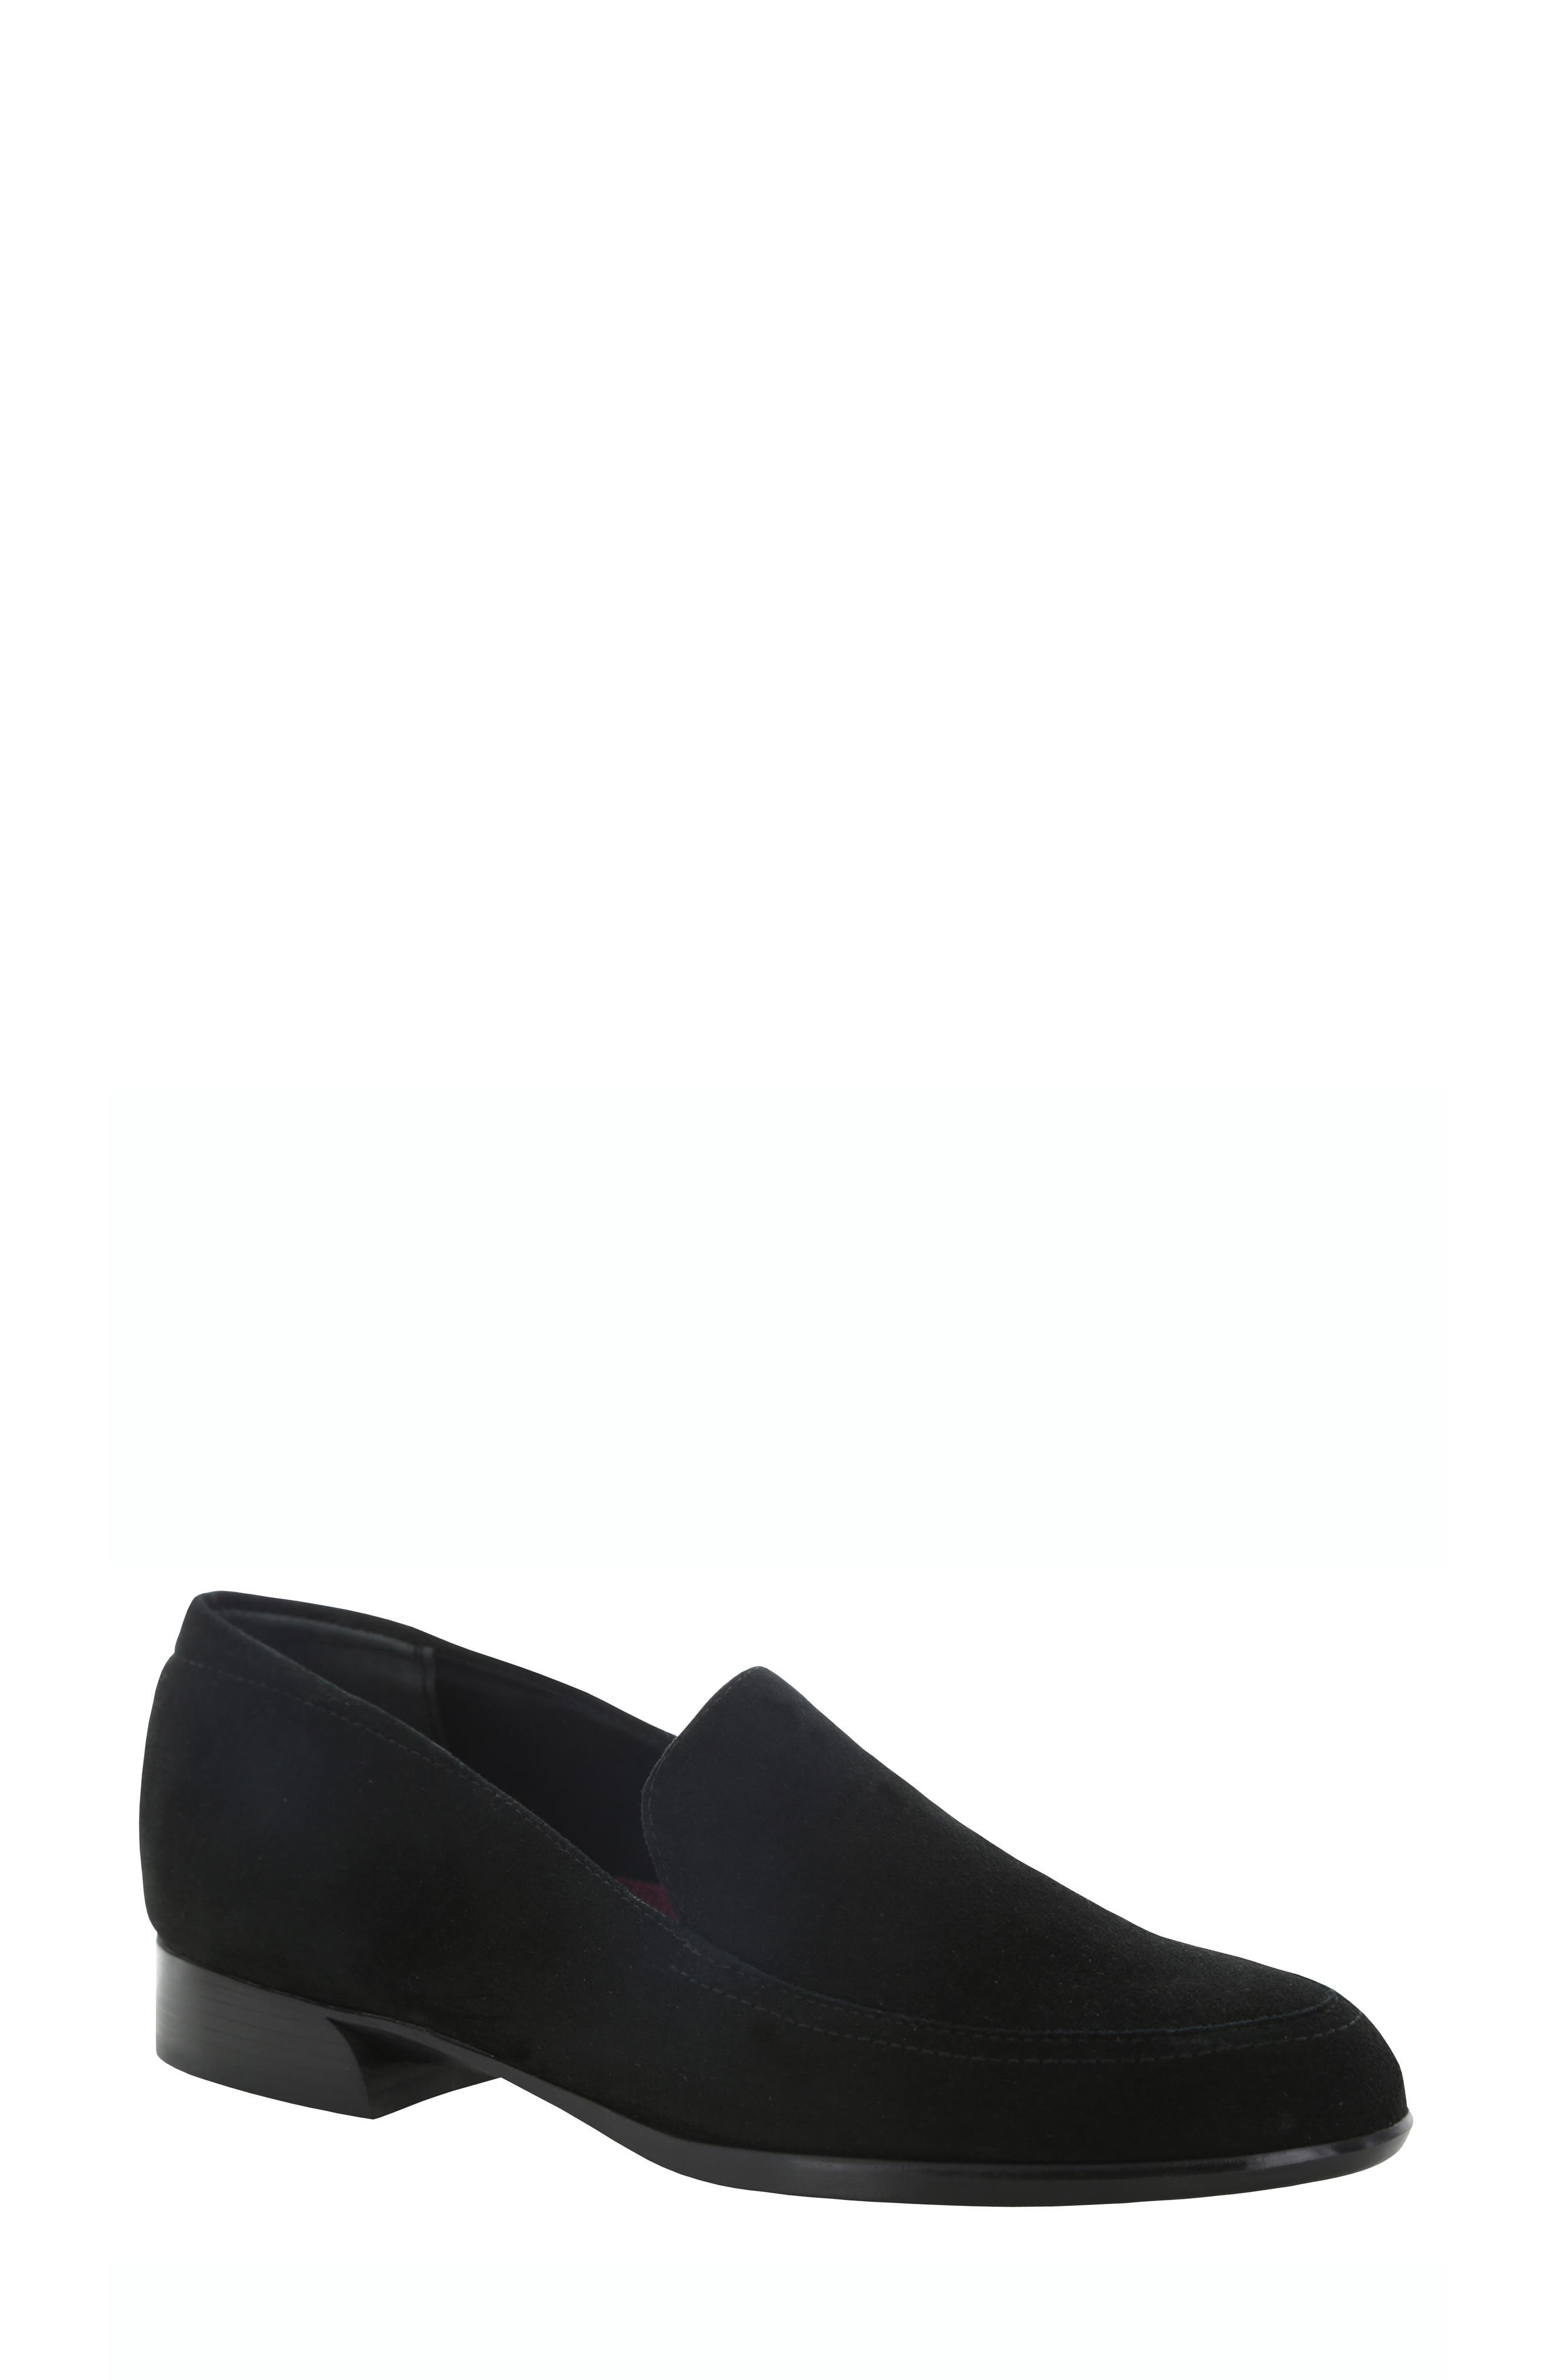 MUNRO Harrison Loafer in Black Suede